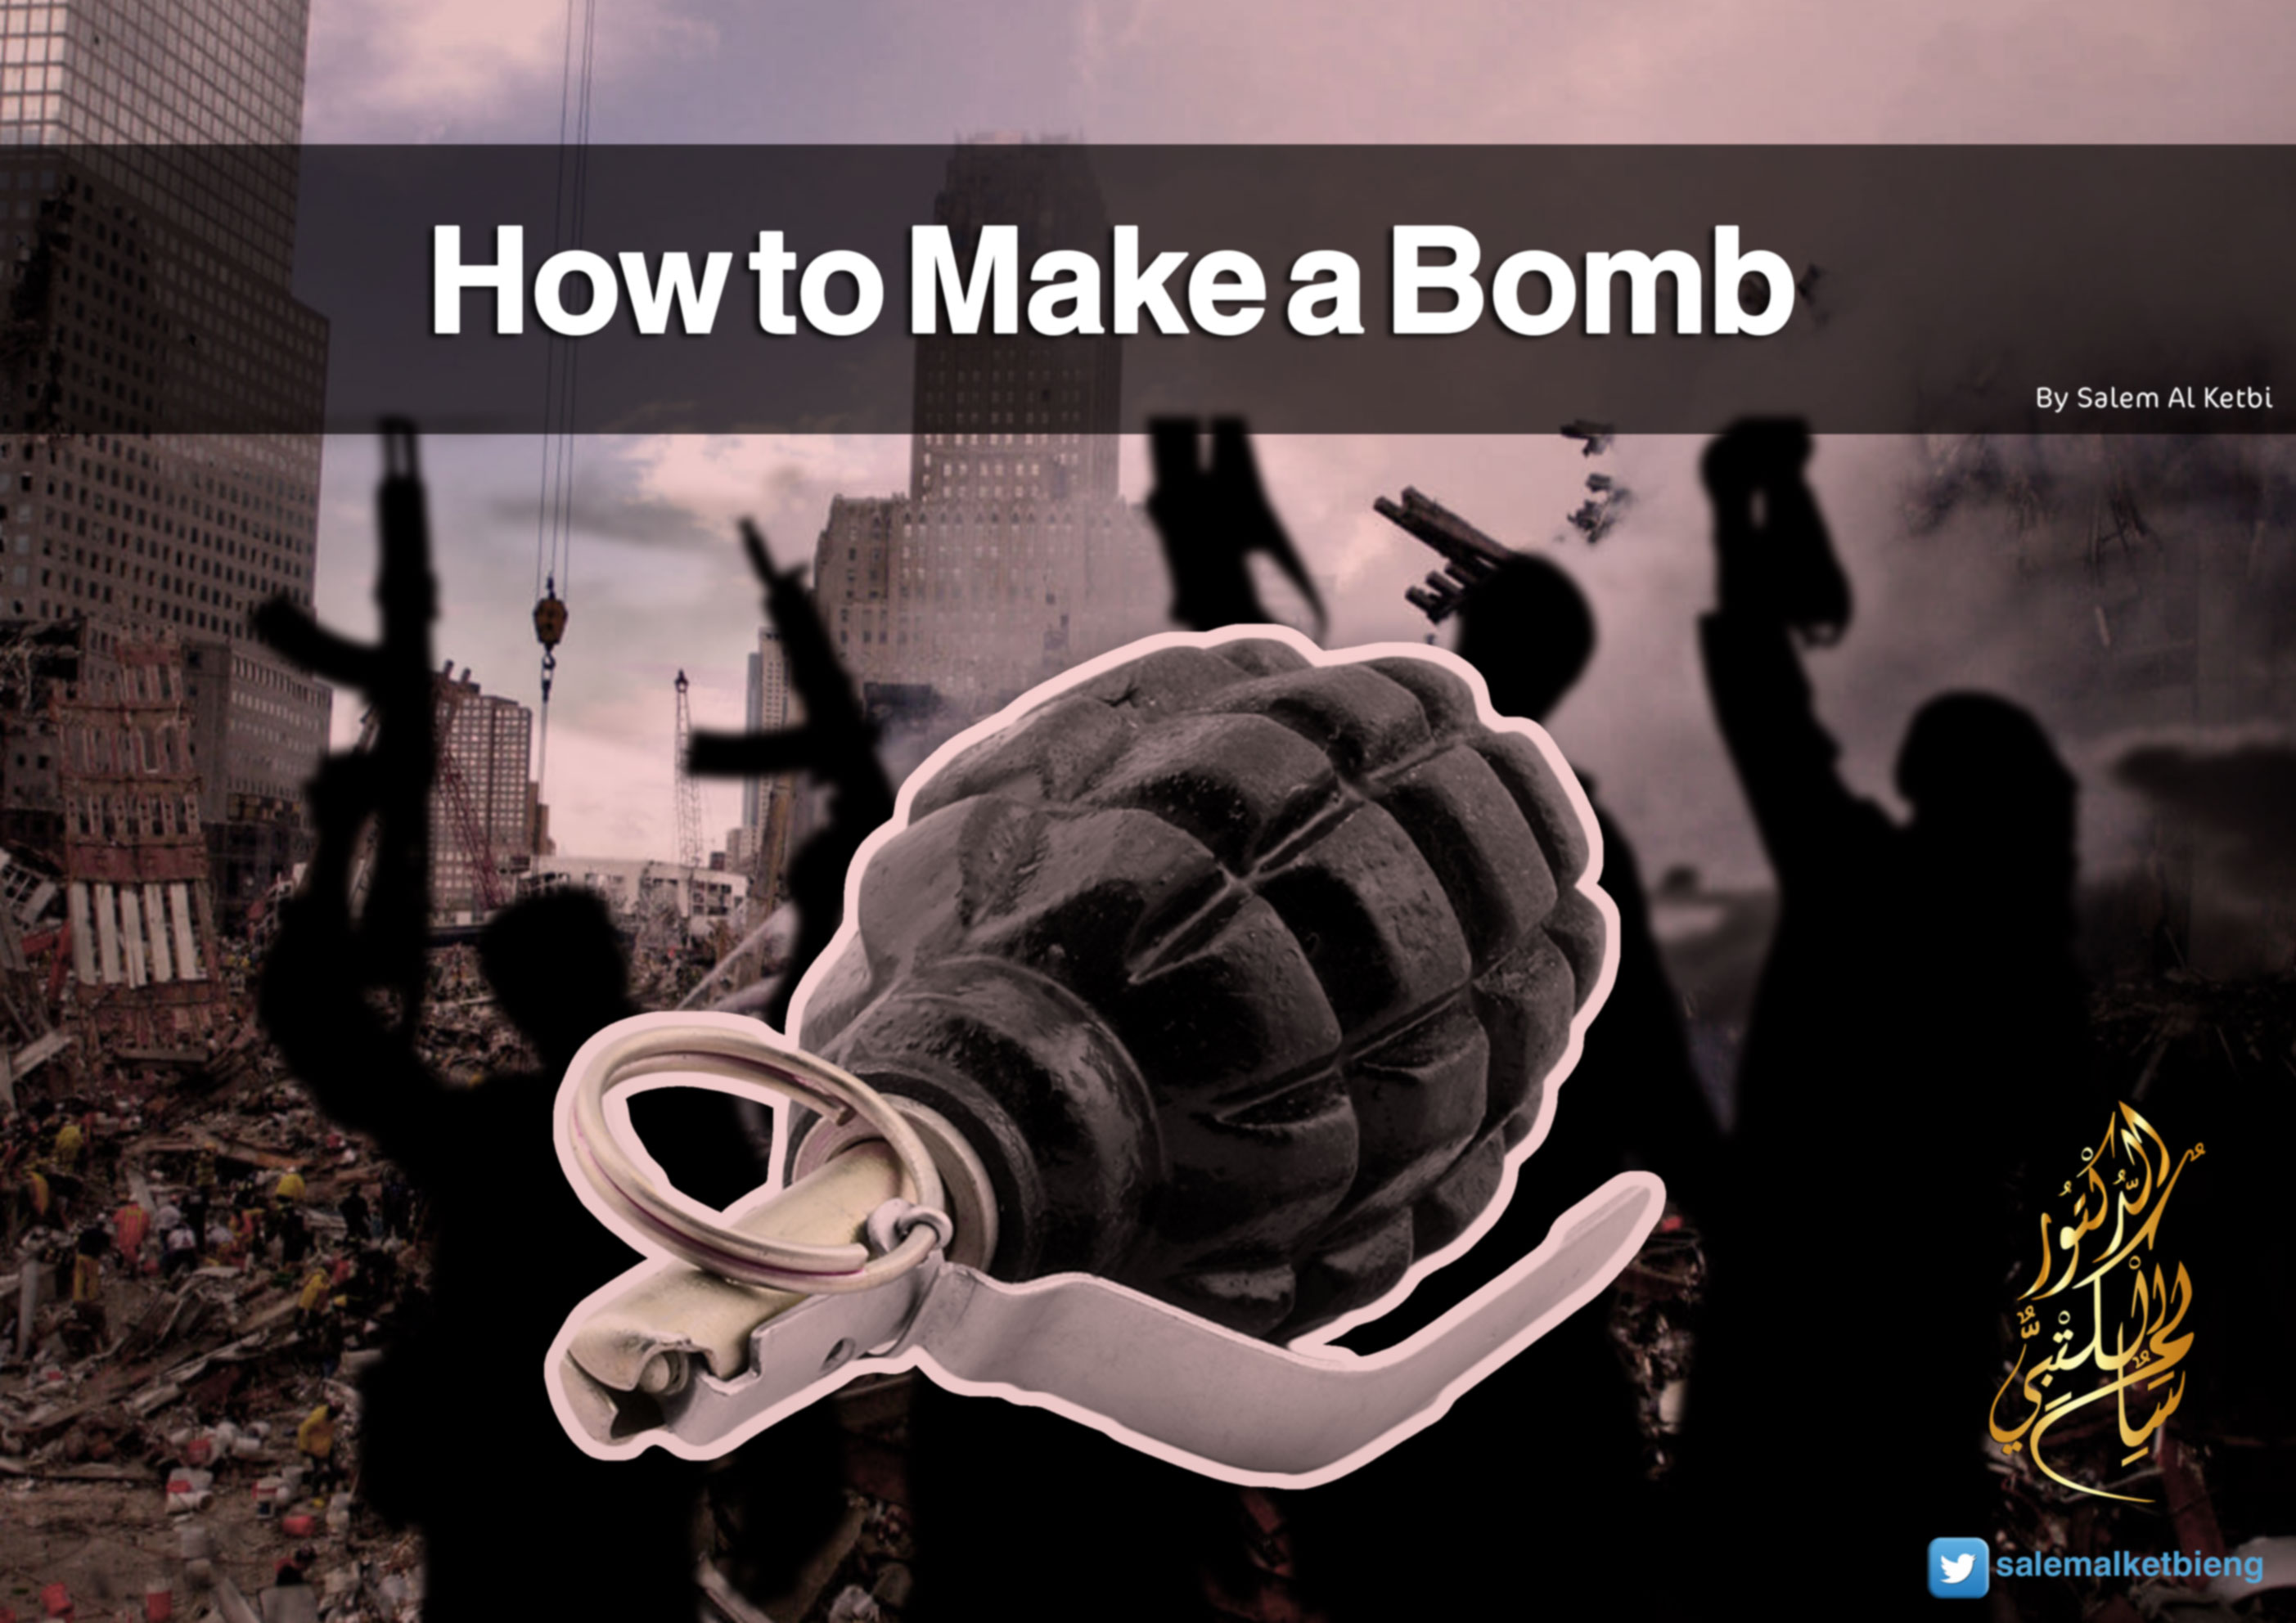 How to Make a Bomb